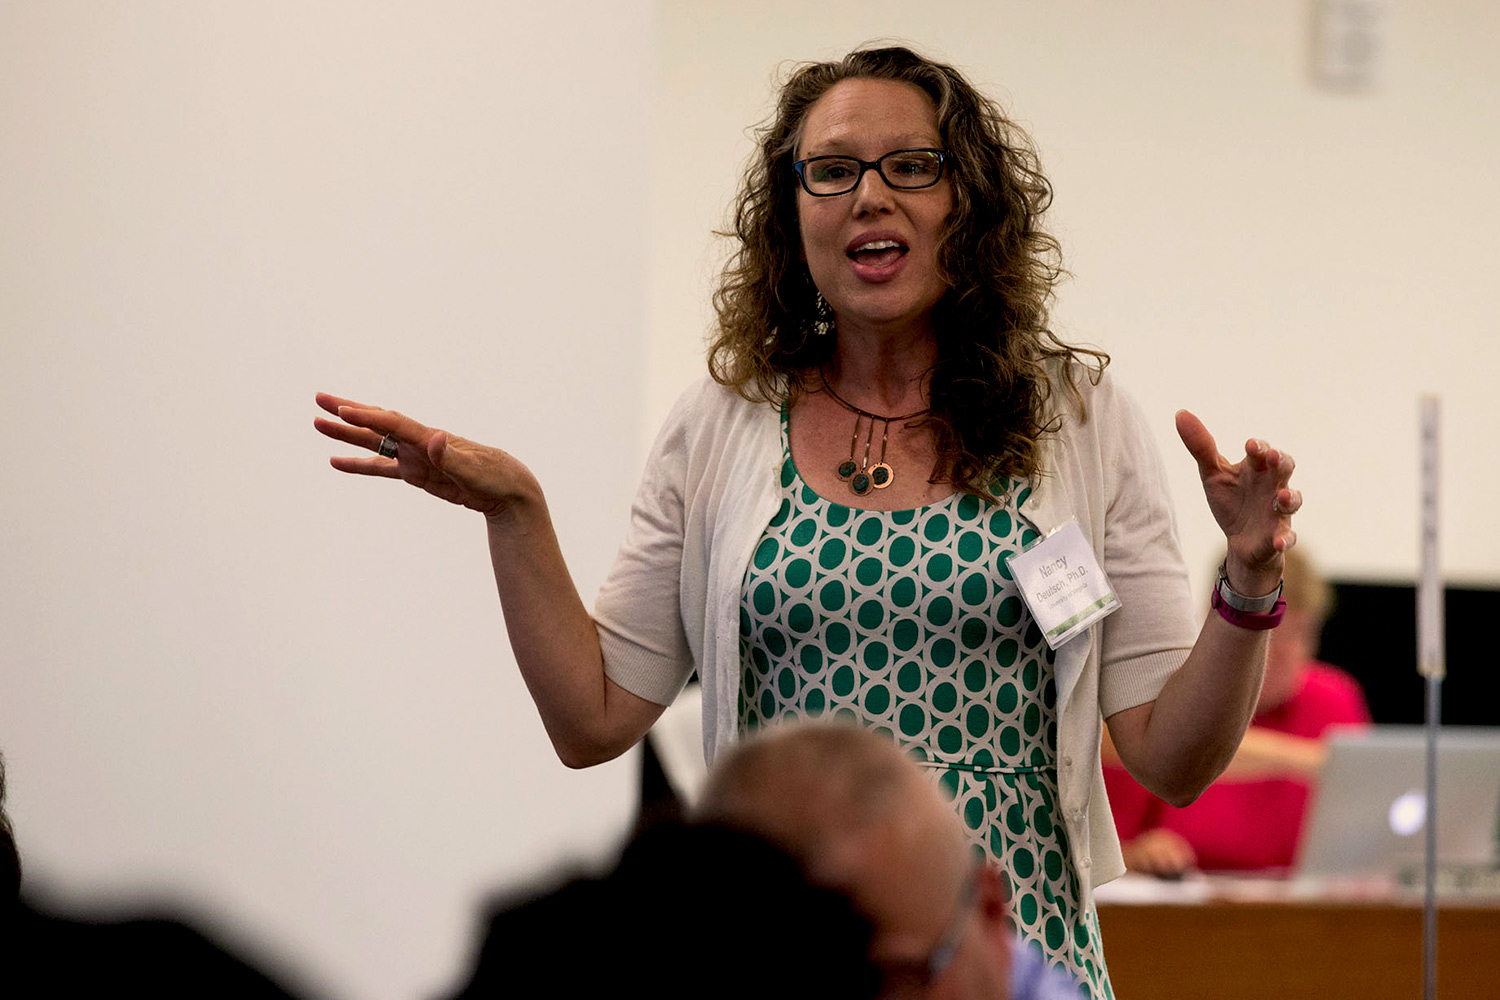 Nancy Deutsch, an associate professor in the Curry School of Education, led a discussion on developing strategies to prevent and respond to incidences of violence on college campuses.